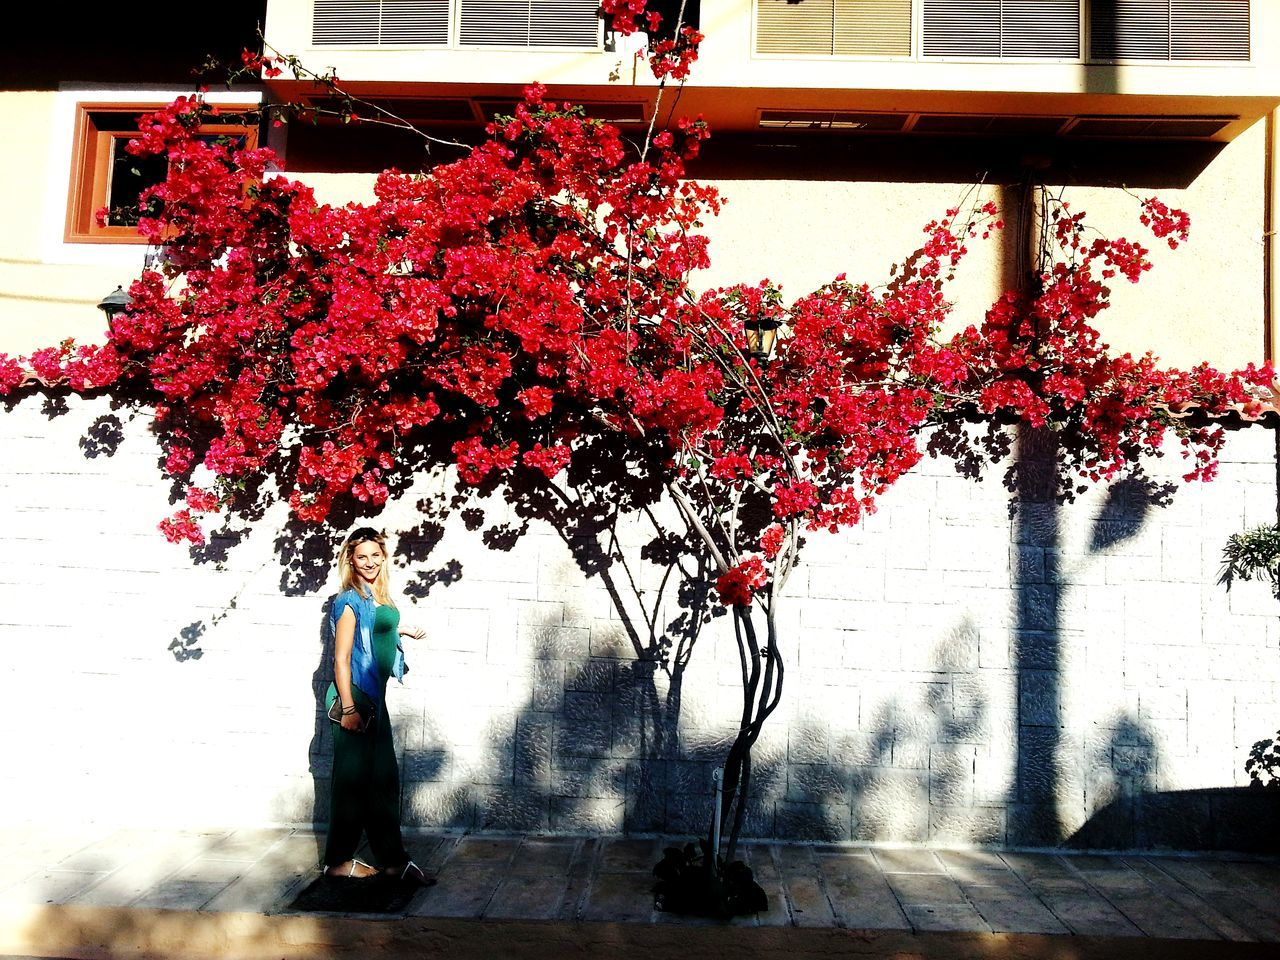 tree, growth, flower, real people, building exterior, architecture, plant, nature, one person, red, day, built structure, full length, outdoors, beauty in nature, women, freshness, people